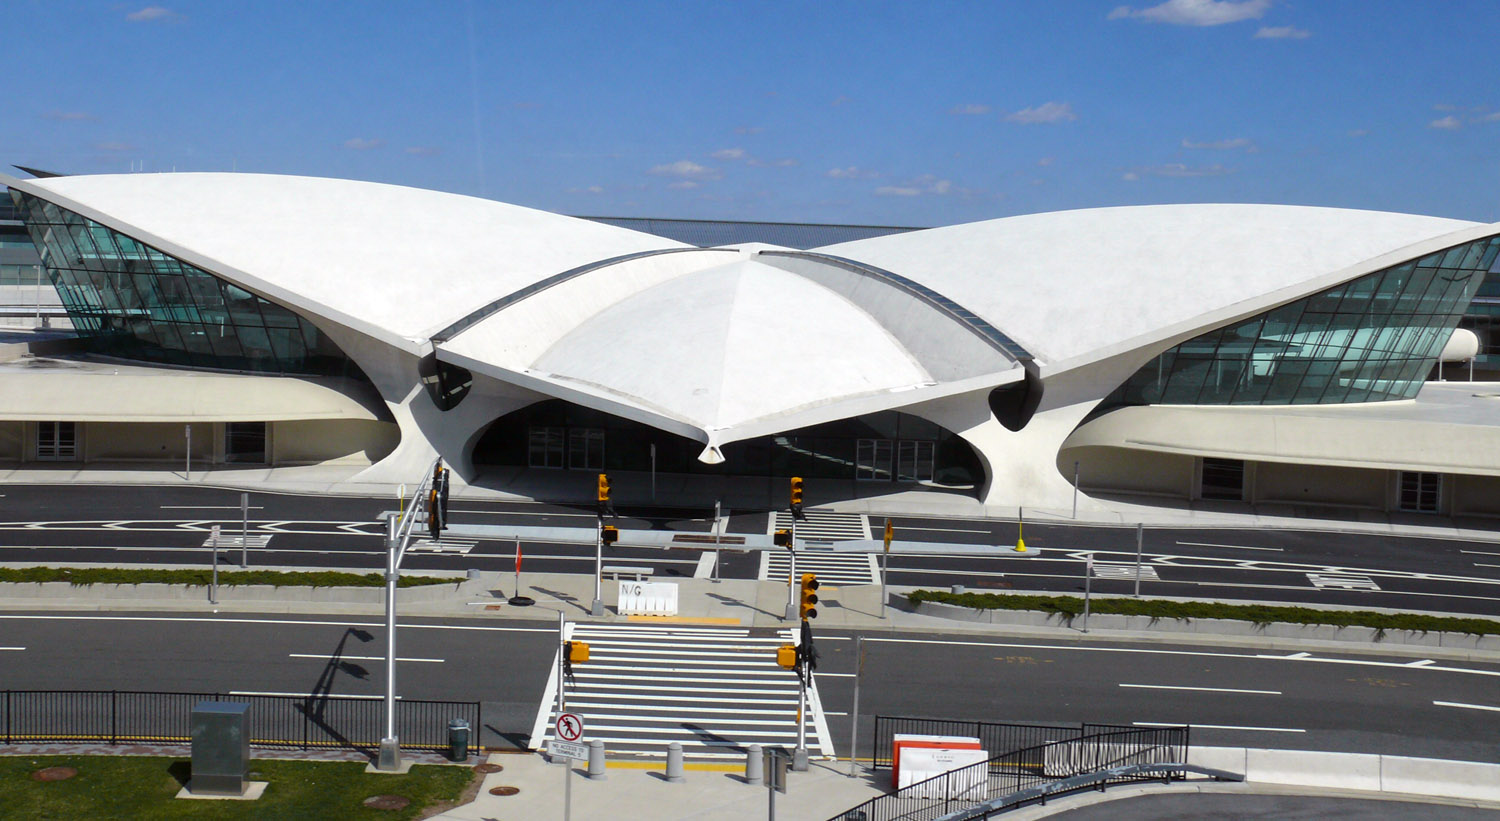 Design insider la terminal twa de eero saarinen va por for Hotel at jfk terminal